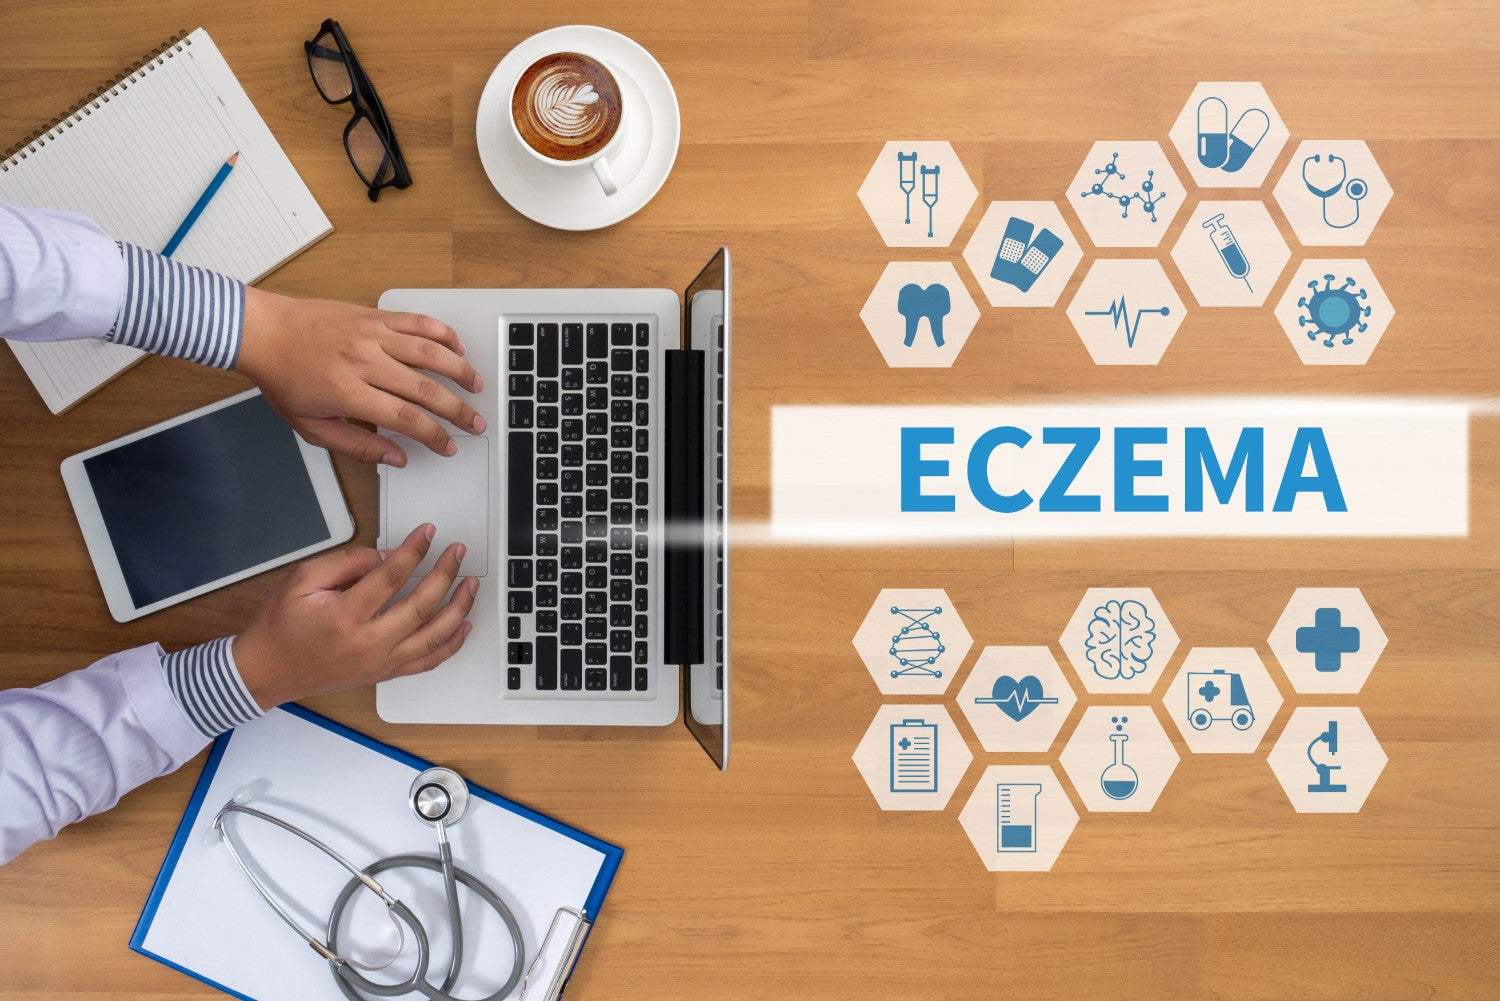 eczema on the table